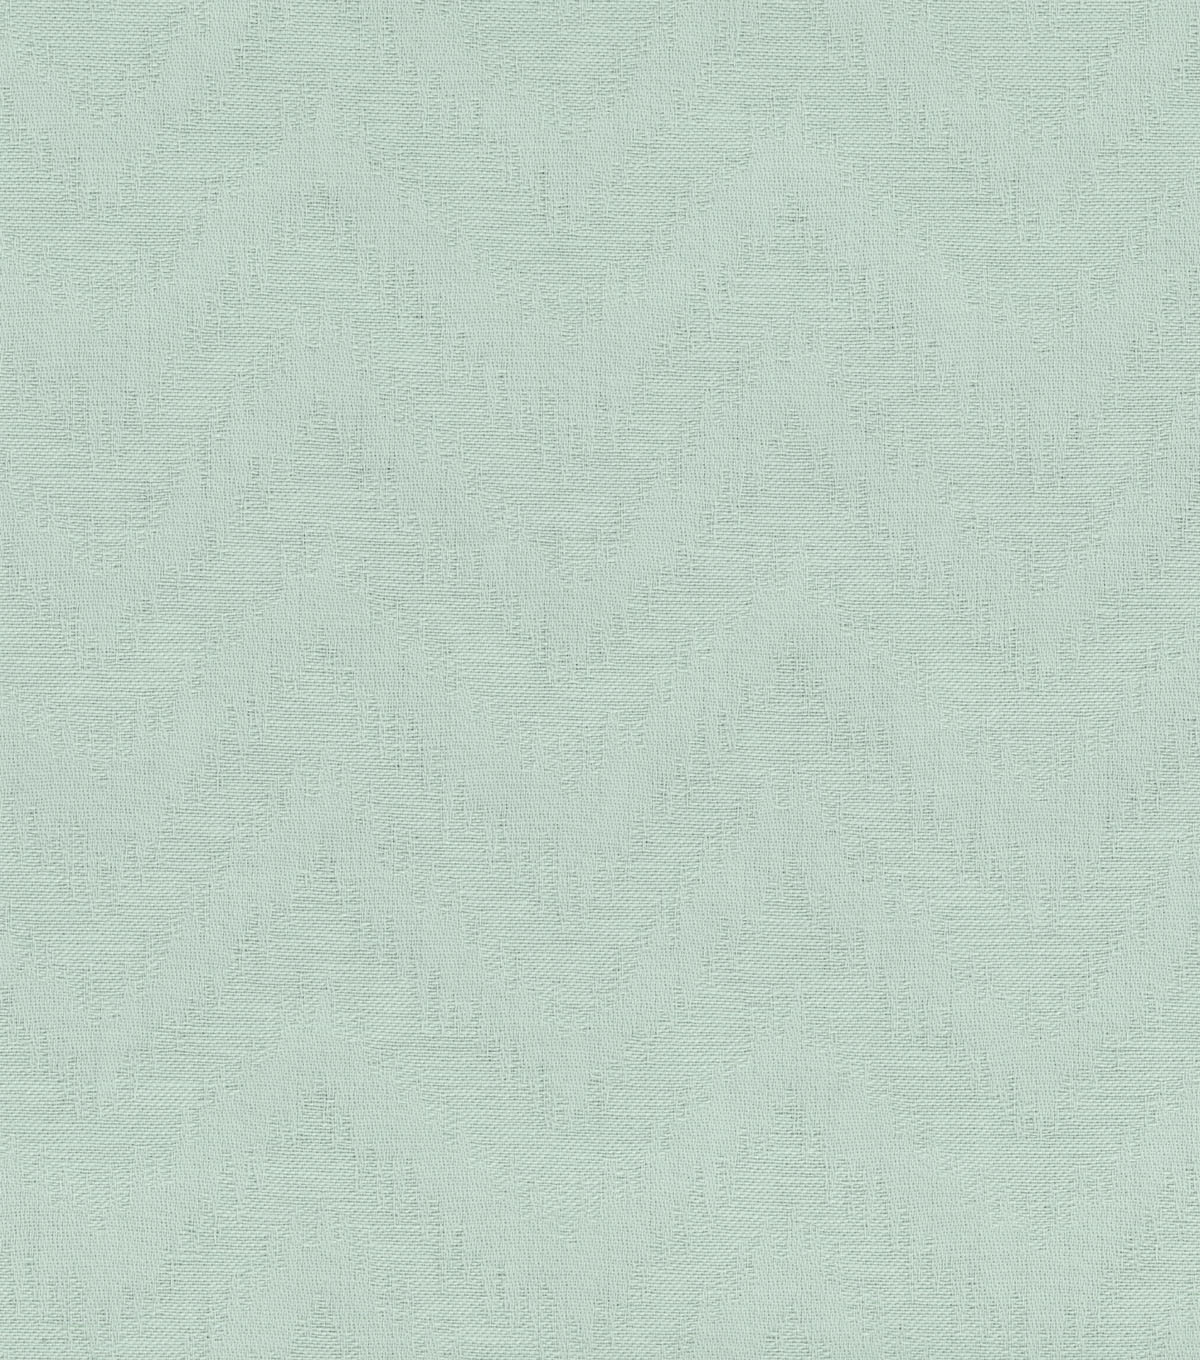 P/K Lifestyles Lightweight Decor Fabric 54\u0022-Peaks Lightweight Decor/Mist